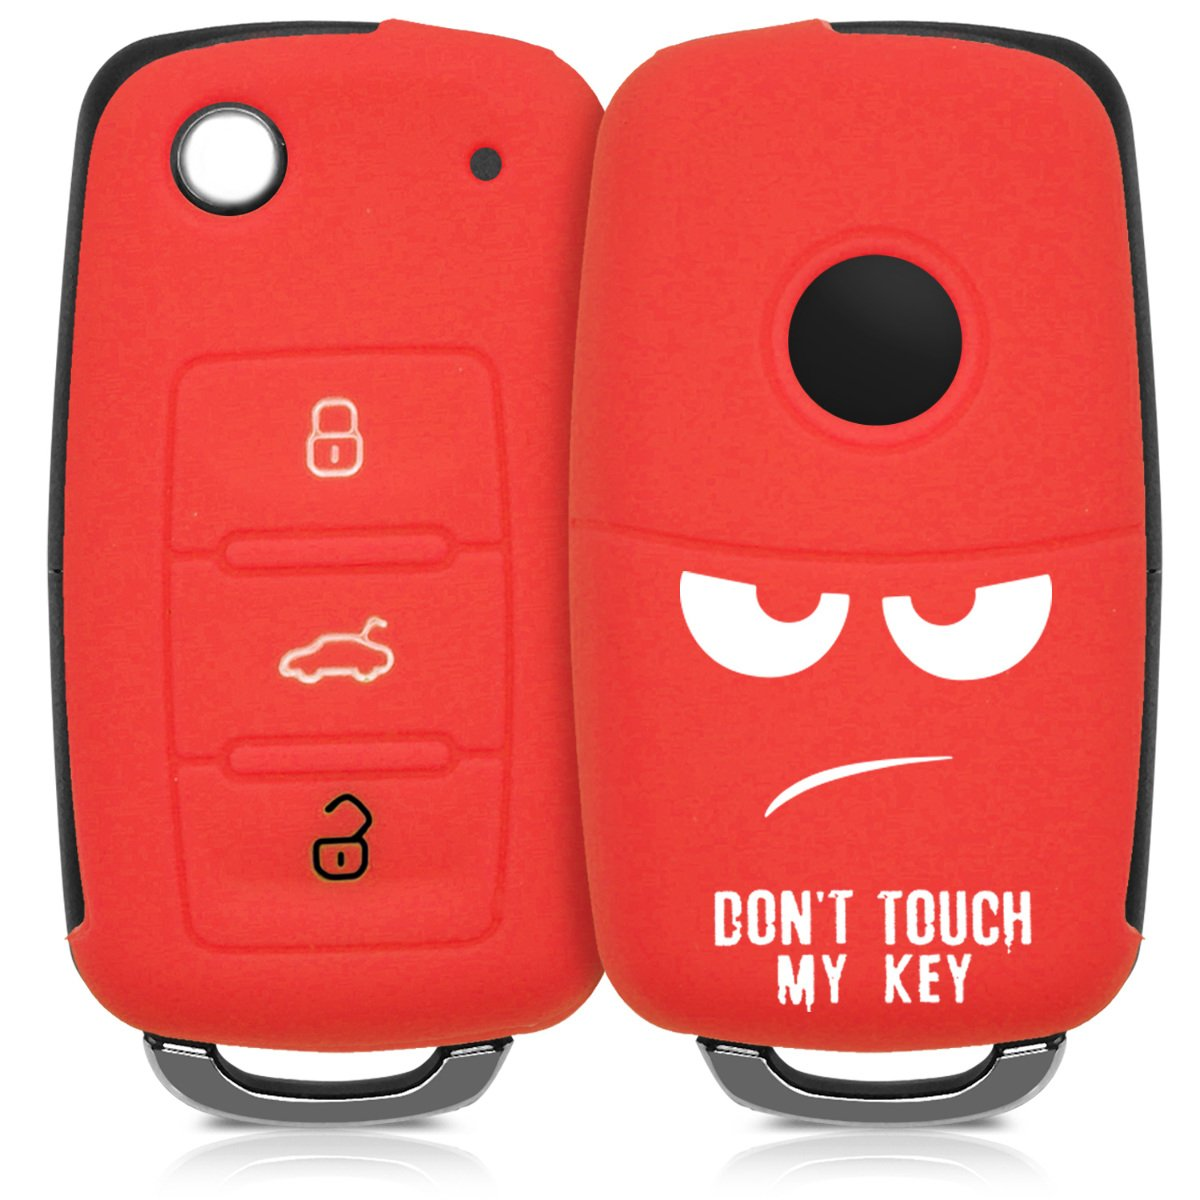 .Dont Touch My Key white / red